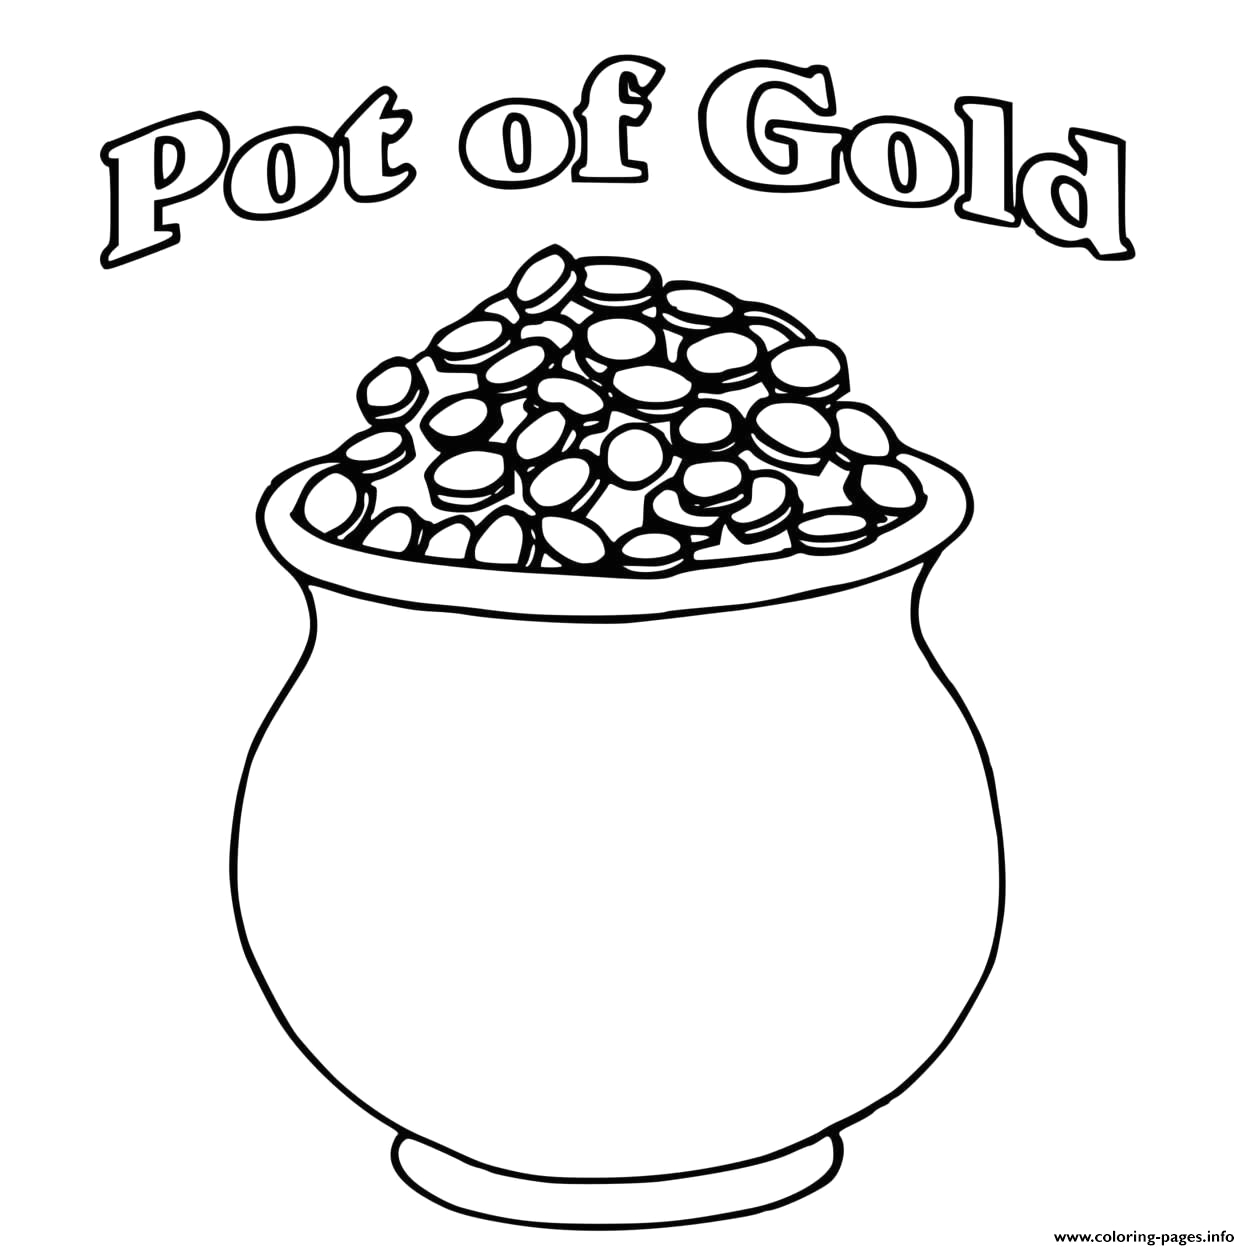 a pot of gold full of coins st patricks printable coloring pages book